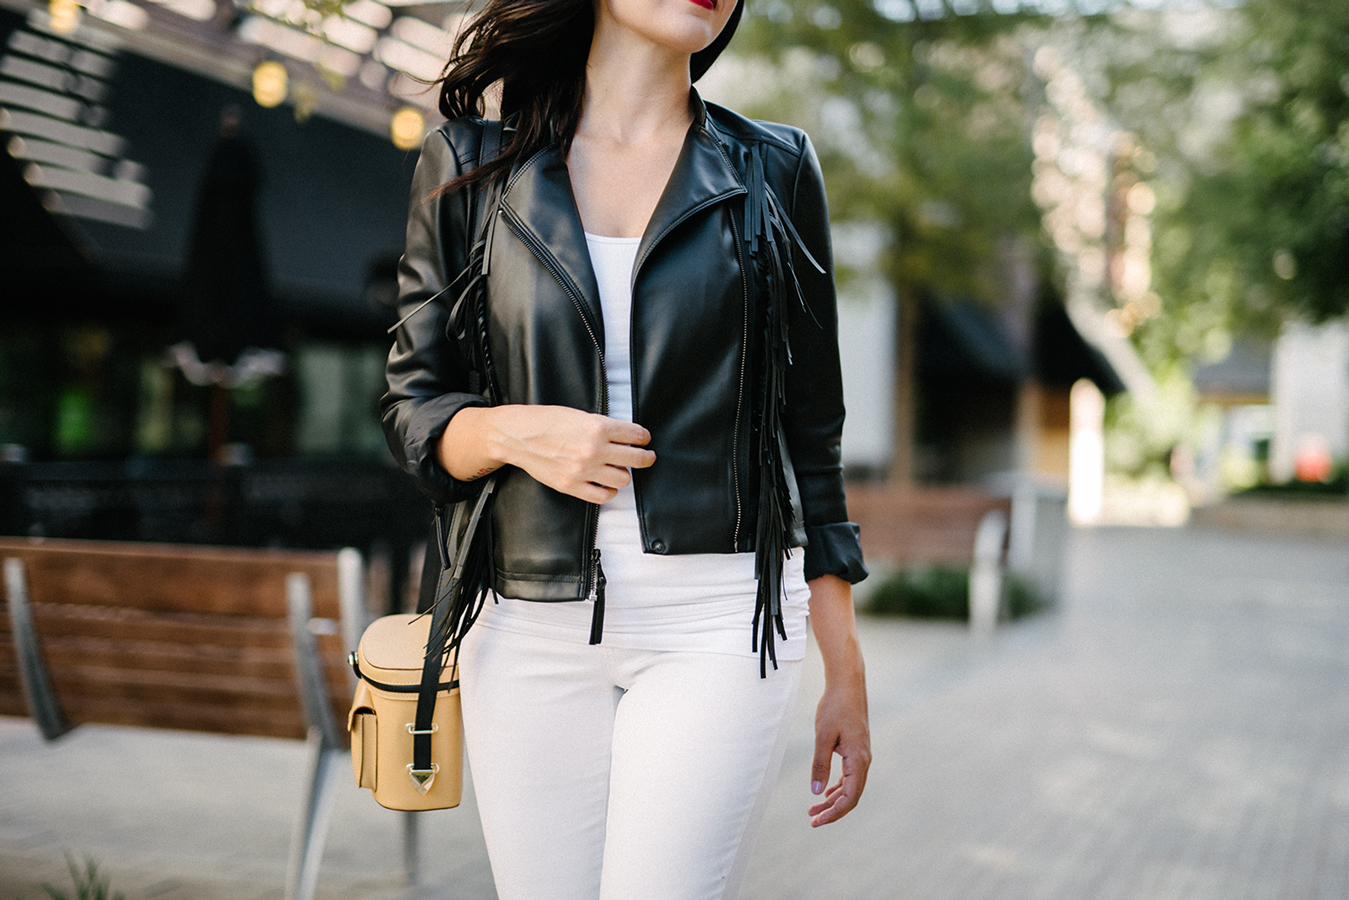 FIXIN-TO-THRILL-EXPRESS-FRINGE-LEATHER-JACKET-REBECCA-MINKOFF-TREND-CARLOS-BARRON-FALL-OCTOBER-ATX-AUSTIN-STYLE-BLOG-FW15-TRENDY-CHIC-GLAM-FASHION-TEXAS-7